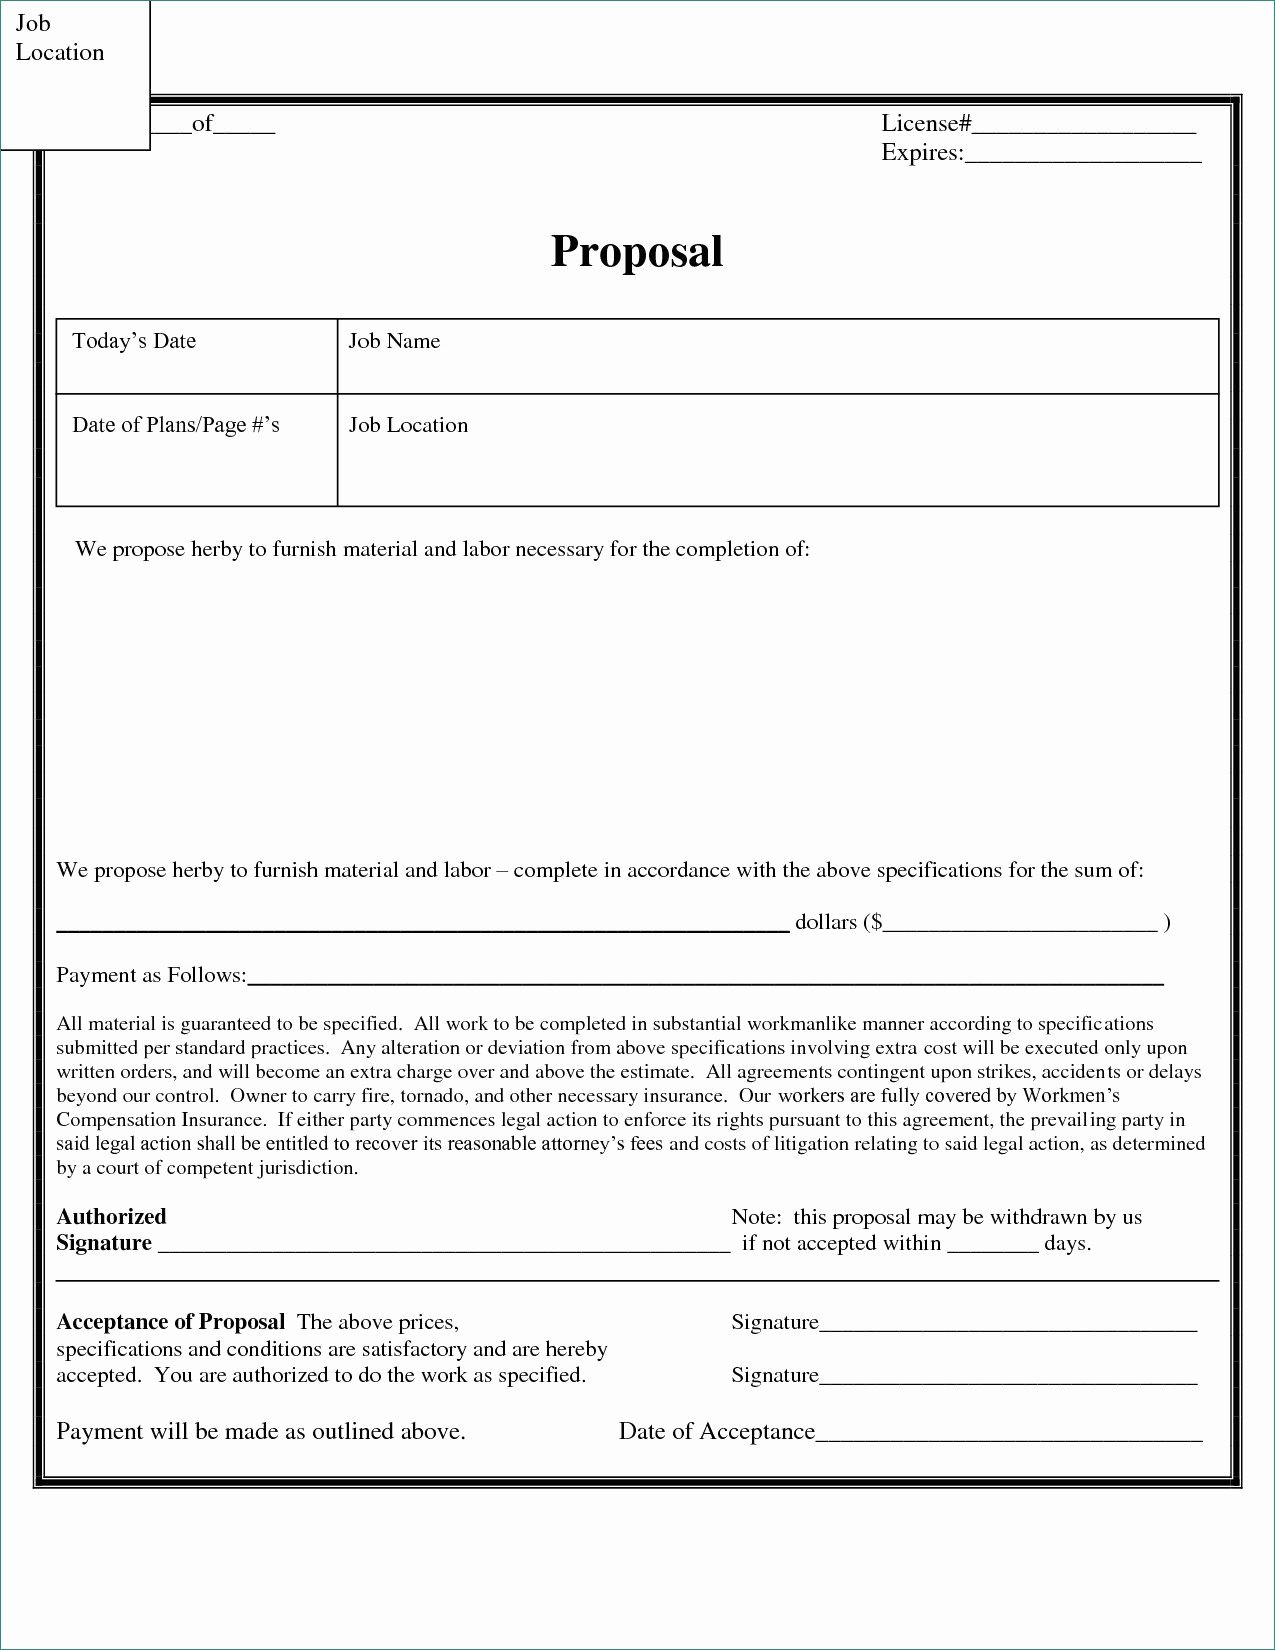 free construction proposal forms photo